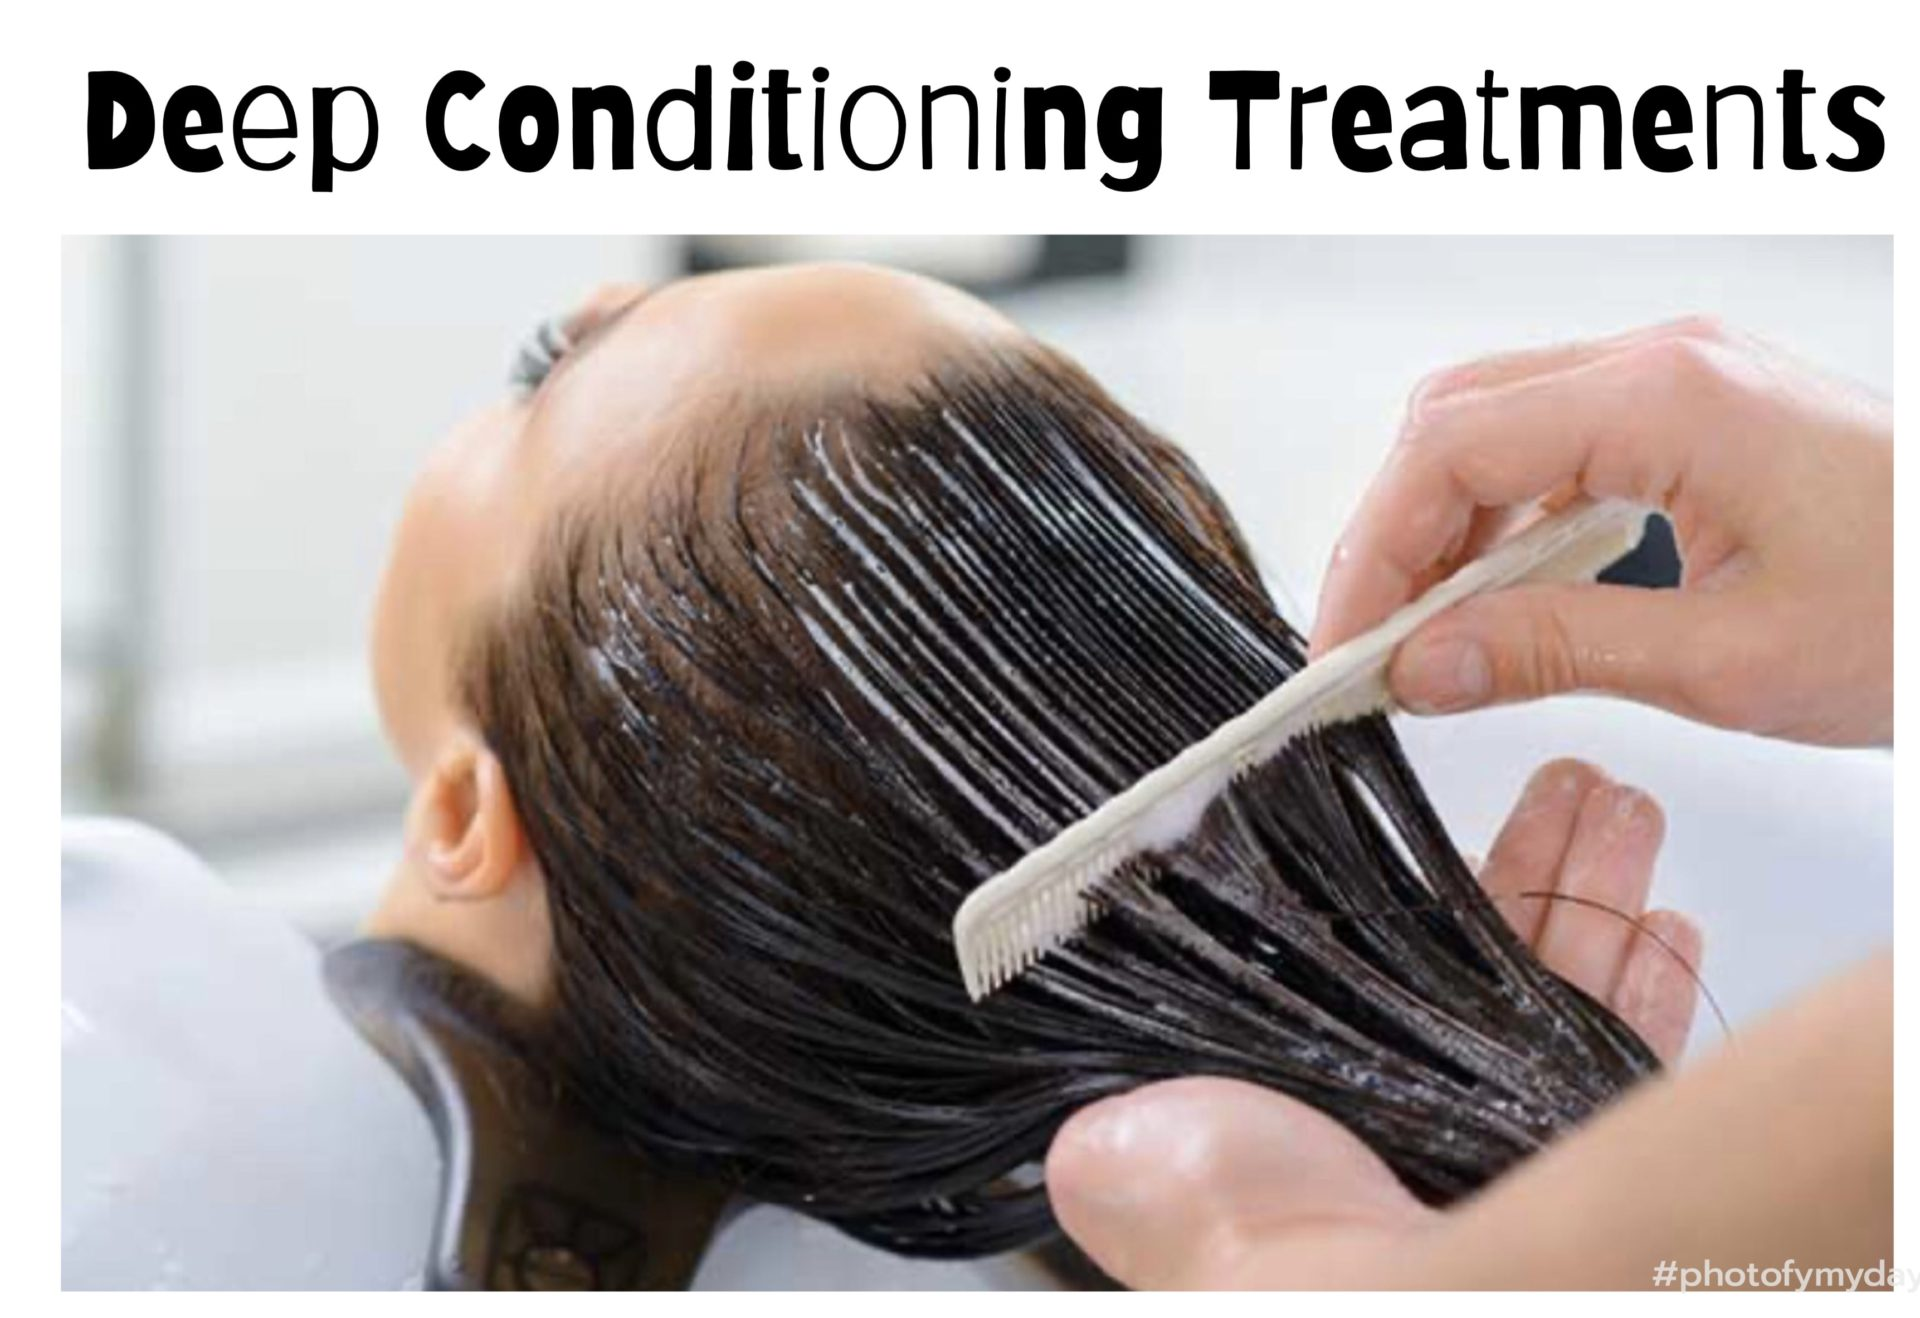 """""""Deep Conditioning Treatment"""" and image of hair being conditioned"""